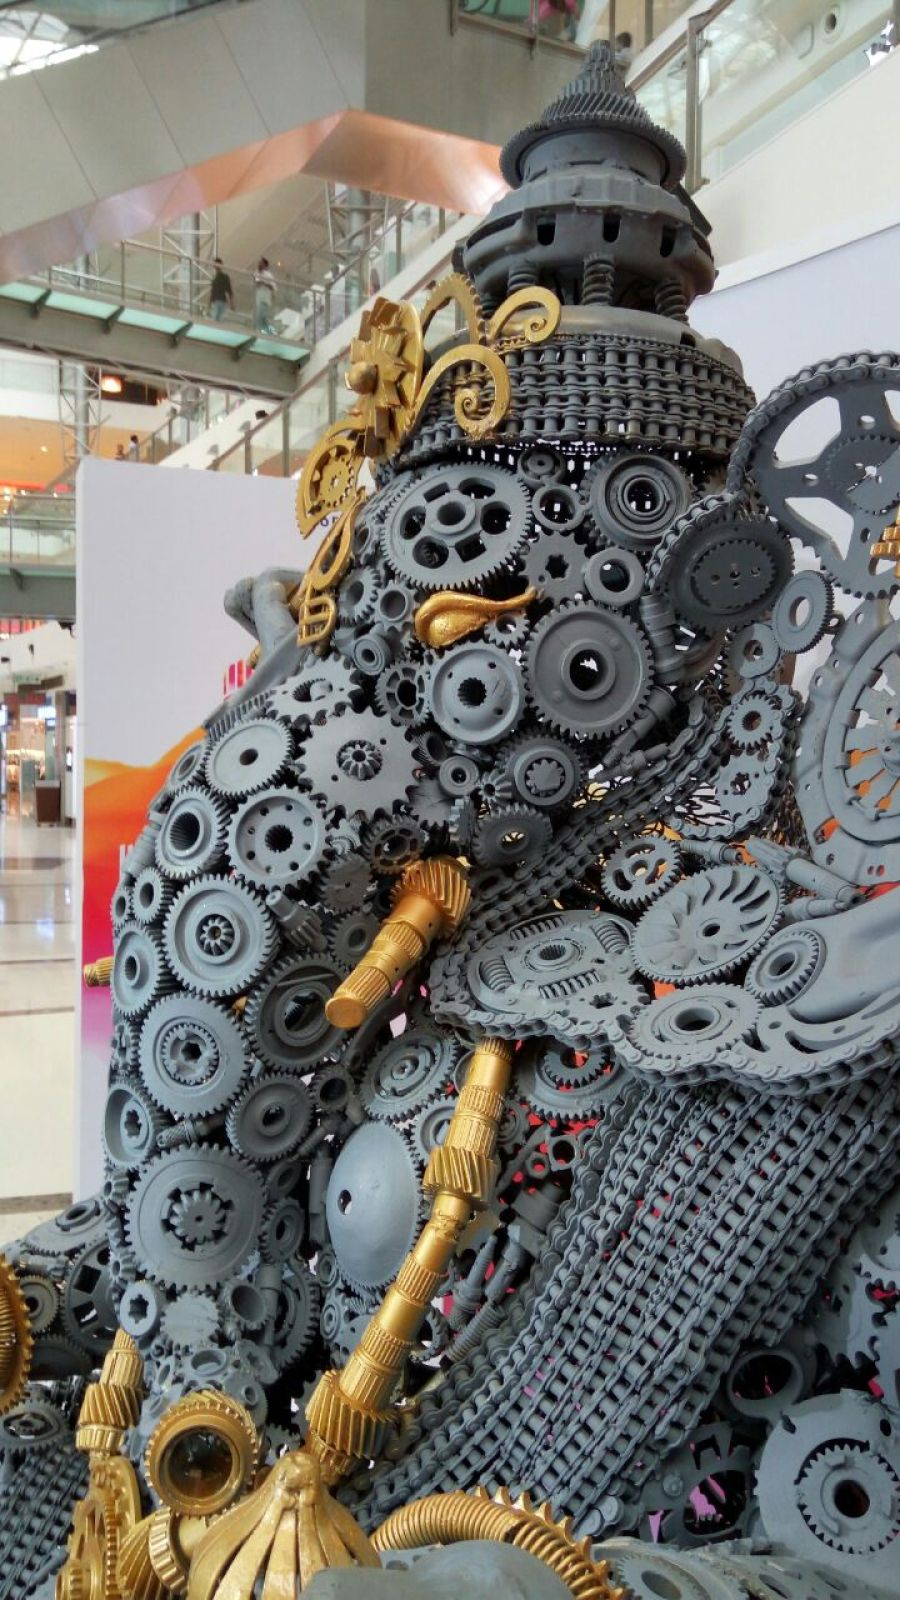 Ganapati made by automobile parts.